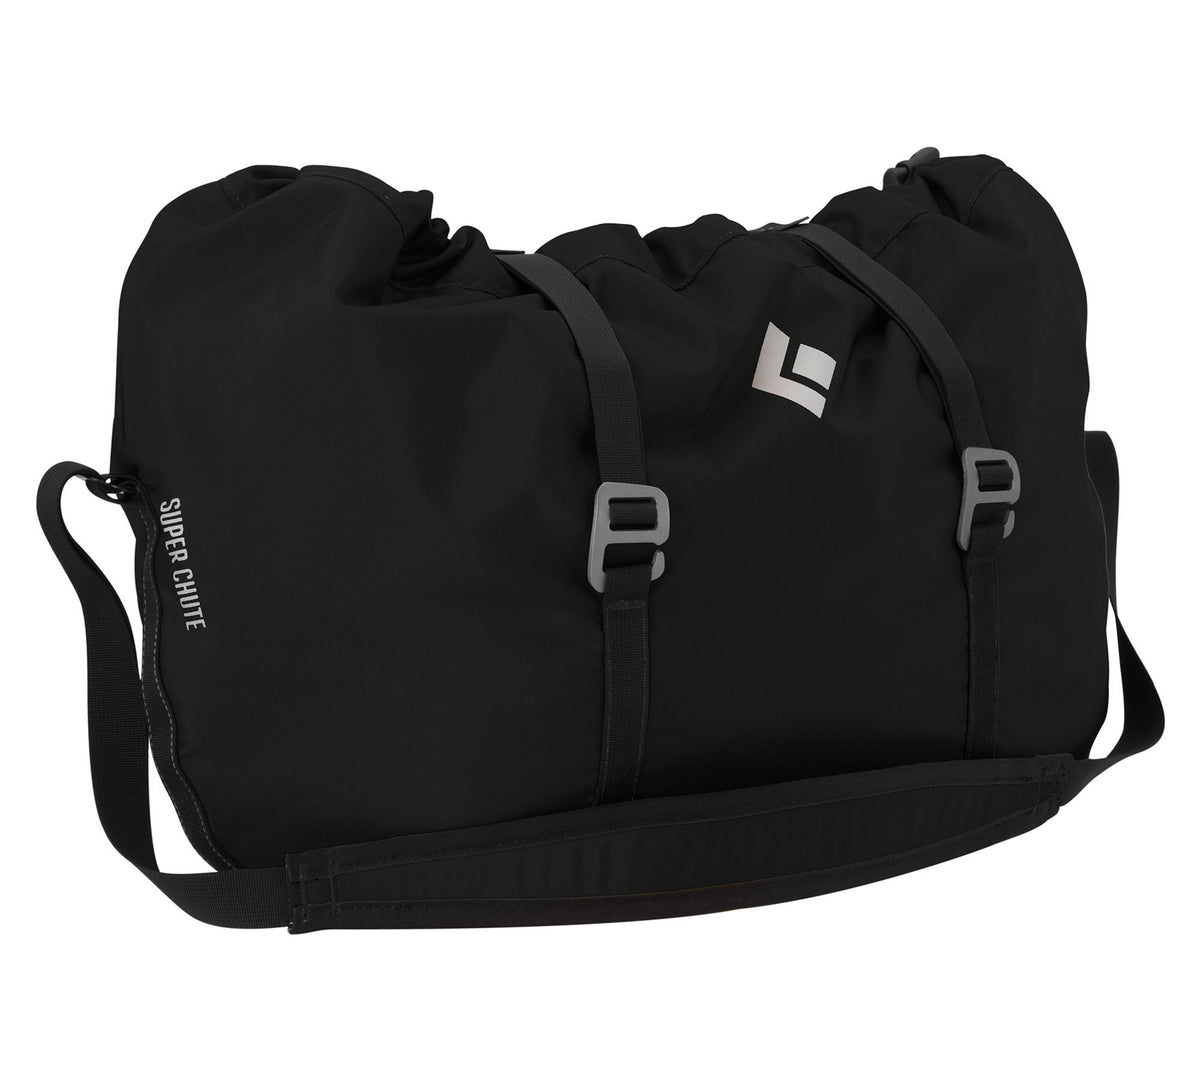 Black Diamond Super Chute climbing rope bag, shown closed in black colour